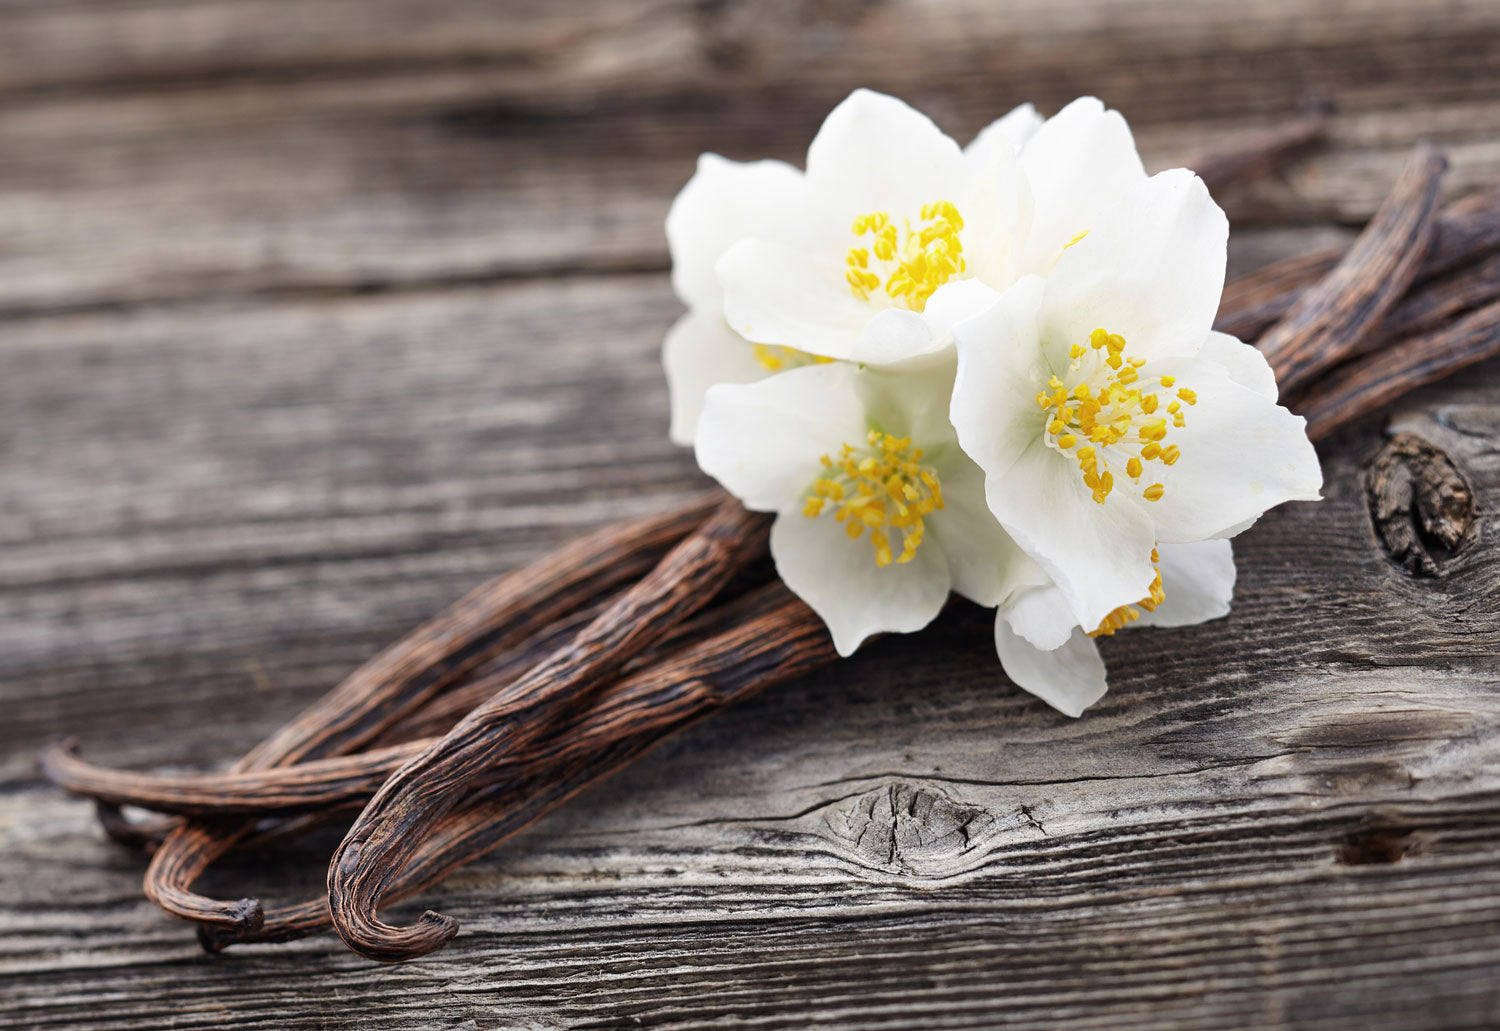 What's The Best Vanilla Perfume?